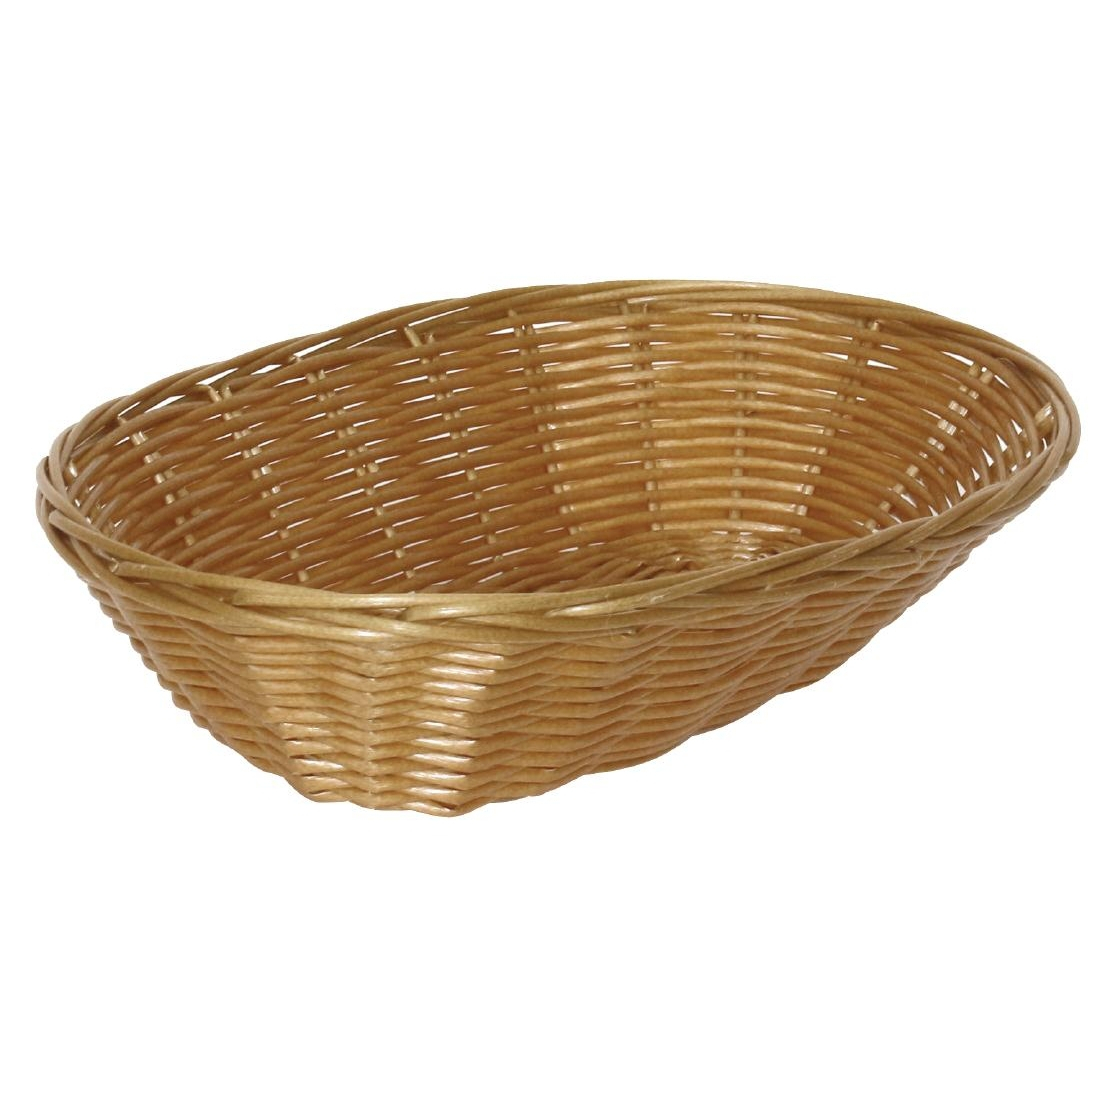 Poly Wicker Oval Food Basket